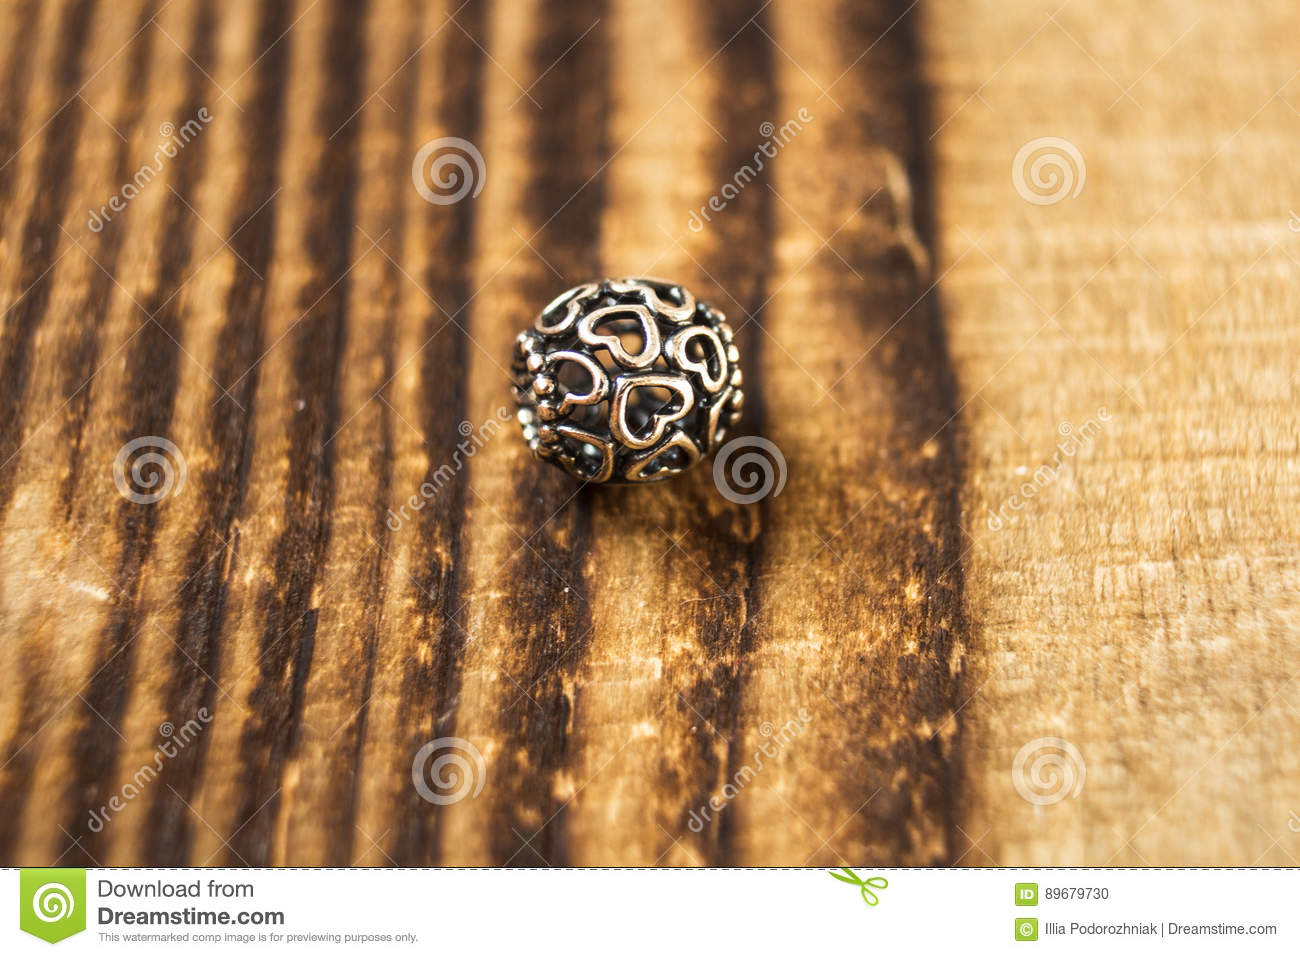 Silver bead for bracelet on wooden background